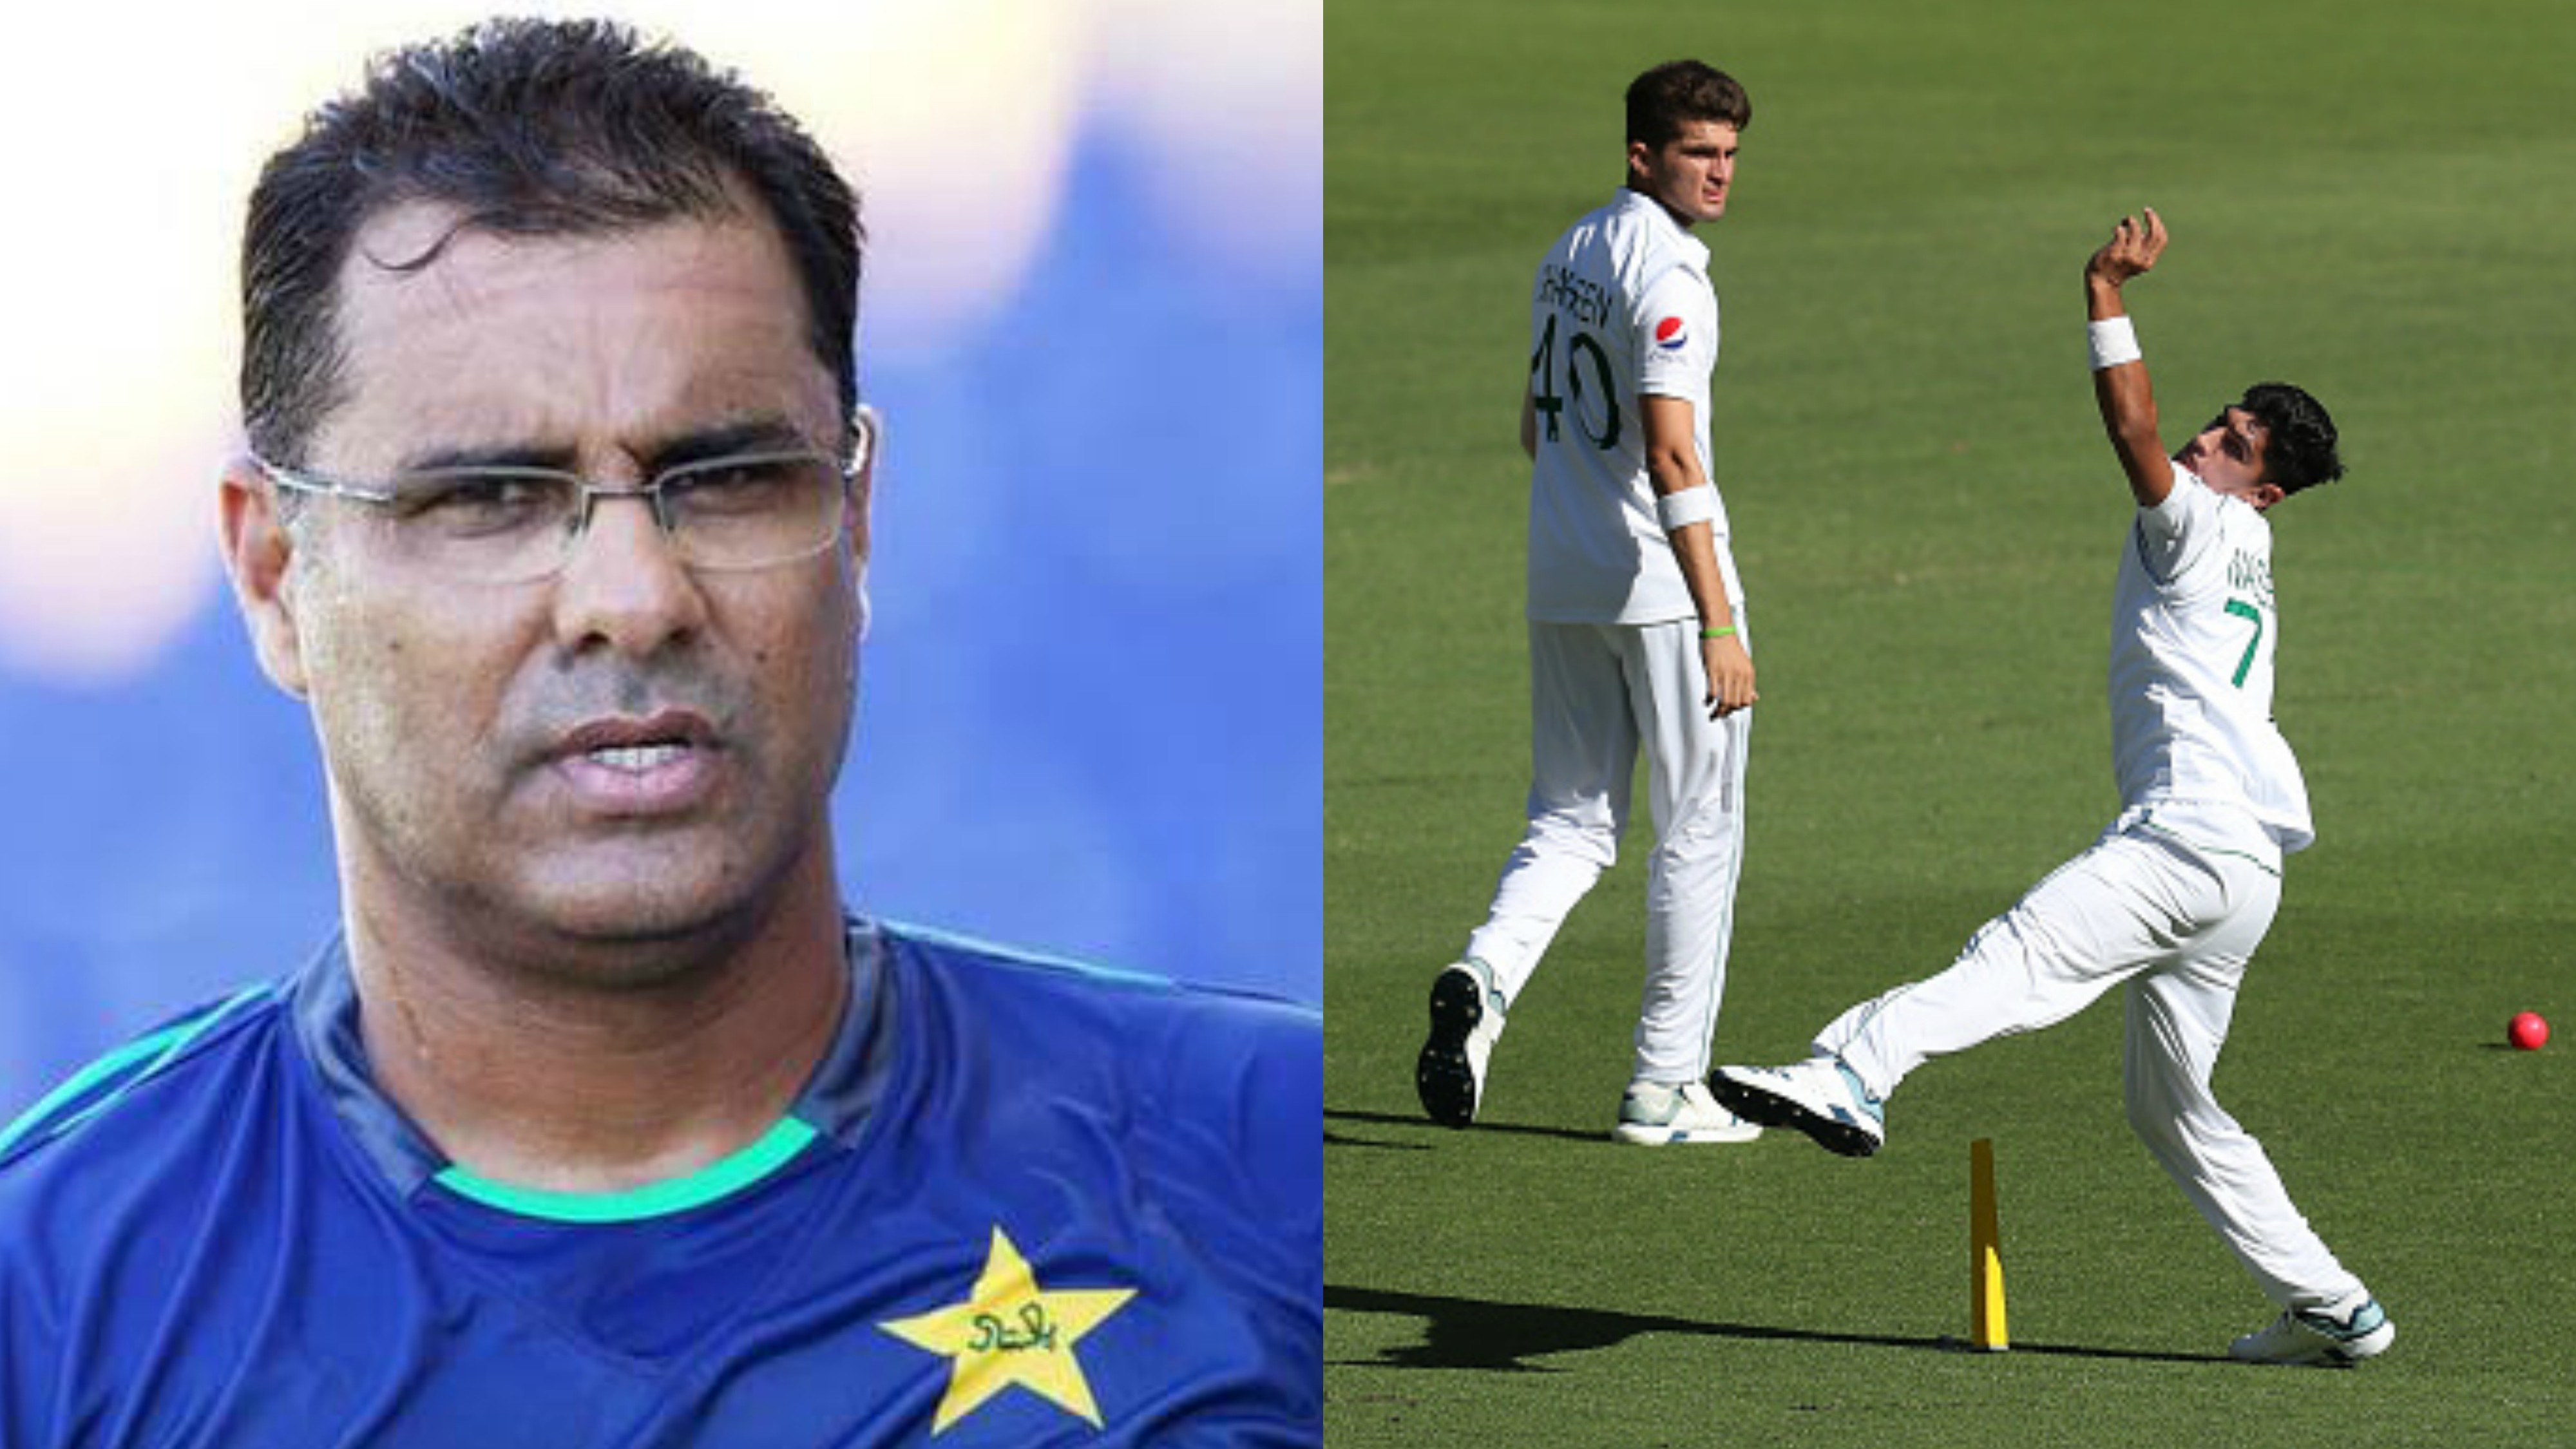 AUS v PAK 2019: Waqar Younis backs young Pakistani pace attack to do well in upcoming Tests